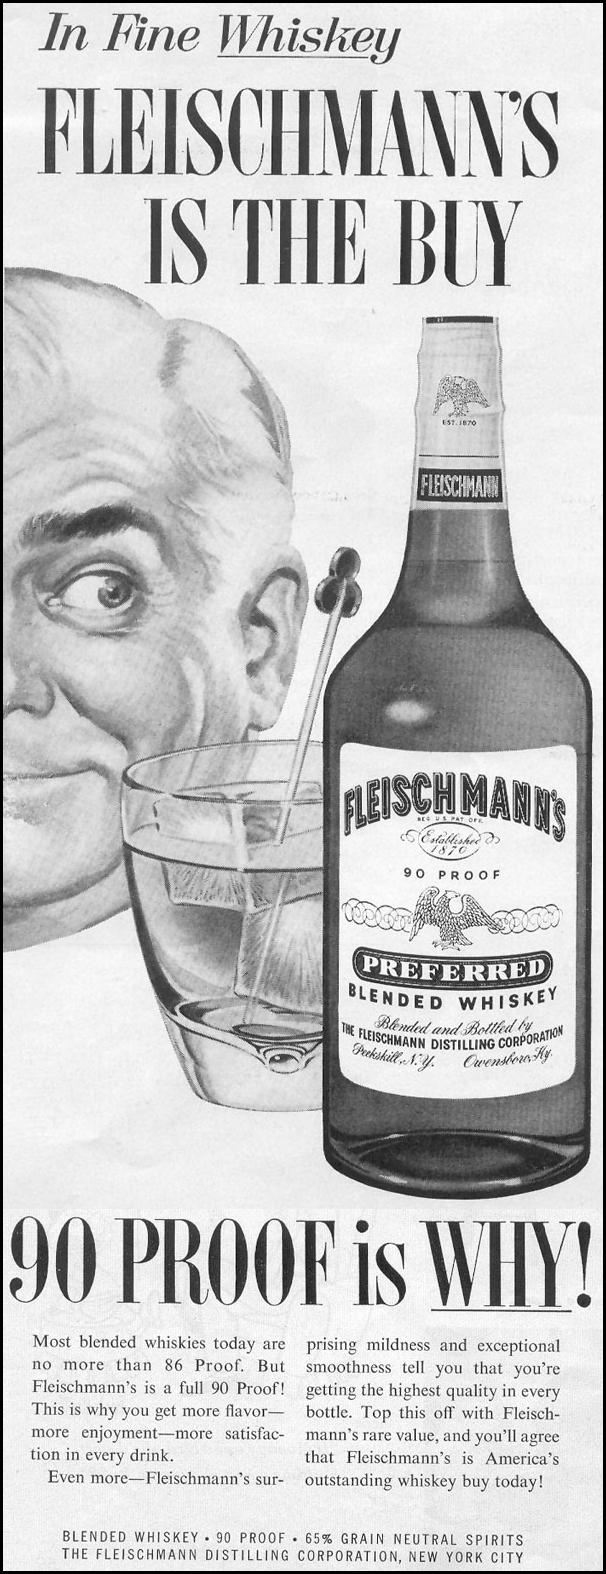 FLEISCHMANN'S PREFERRED BLENDED WHISKEY LOOK 09/16/1958 p. 60